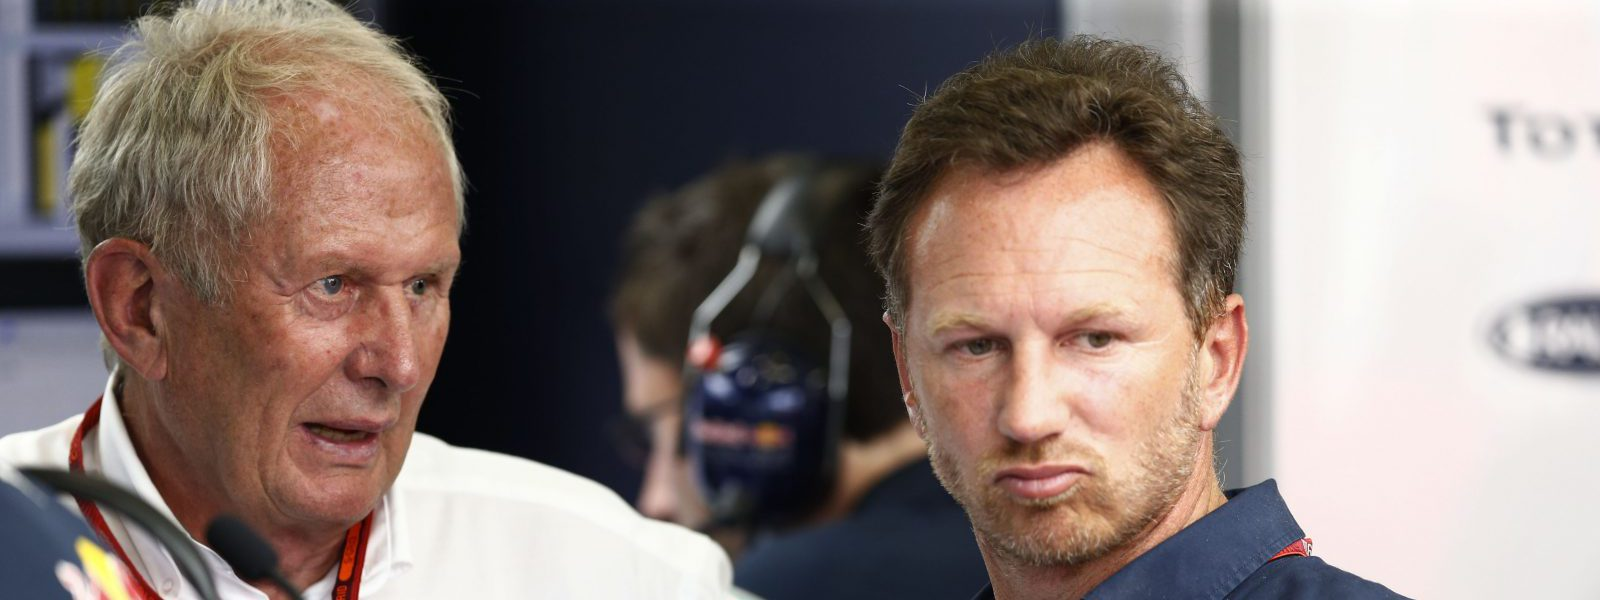 Motorsports: FIA Formula One World Championship 2016, Grand Prix of Belgium,  Dr. Helmut Marko (AUT, Red Bull Racing), Christian Horner (GBR, Red Bull Racing),  *** Local Caption *** +++ www.hoch-zwei.net +++ copyright: HOCH ZWEI +++